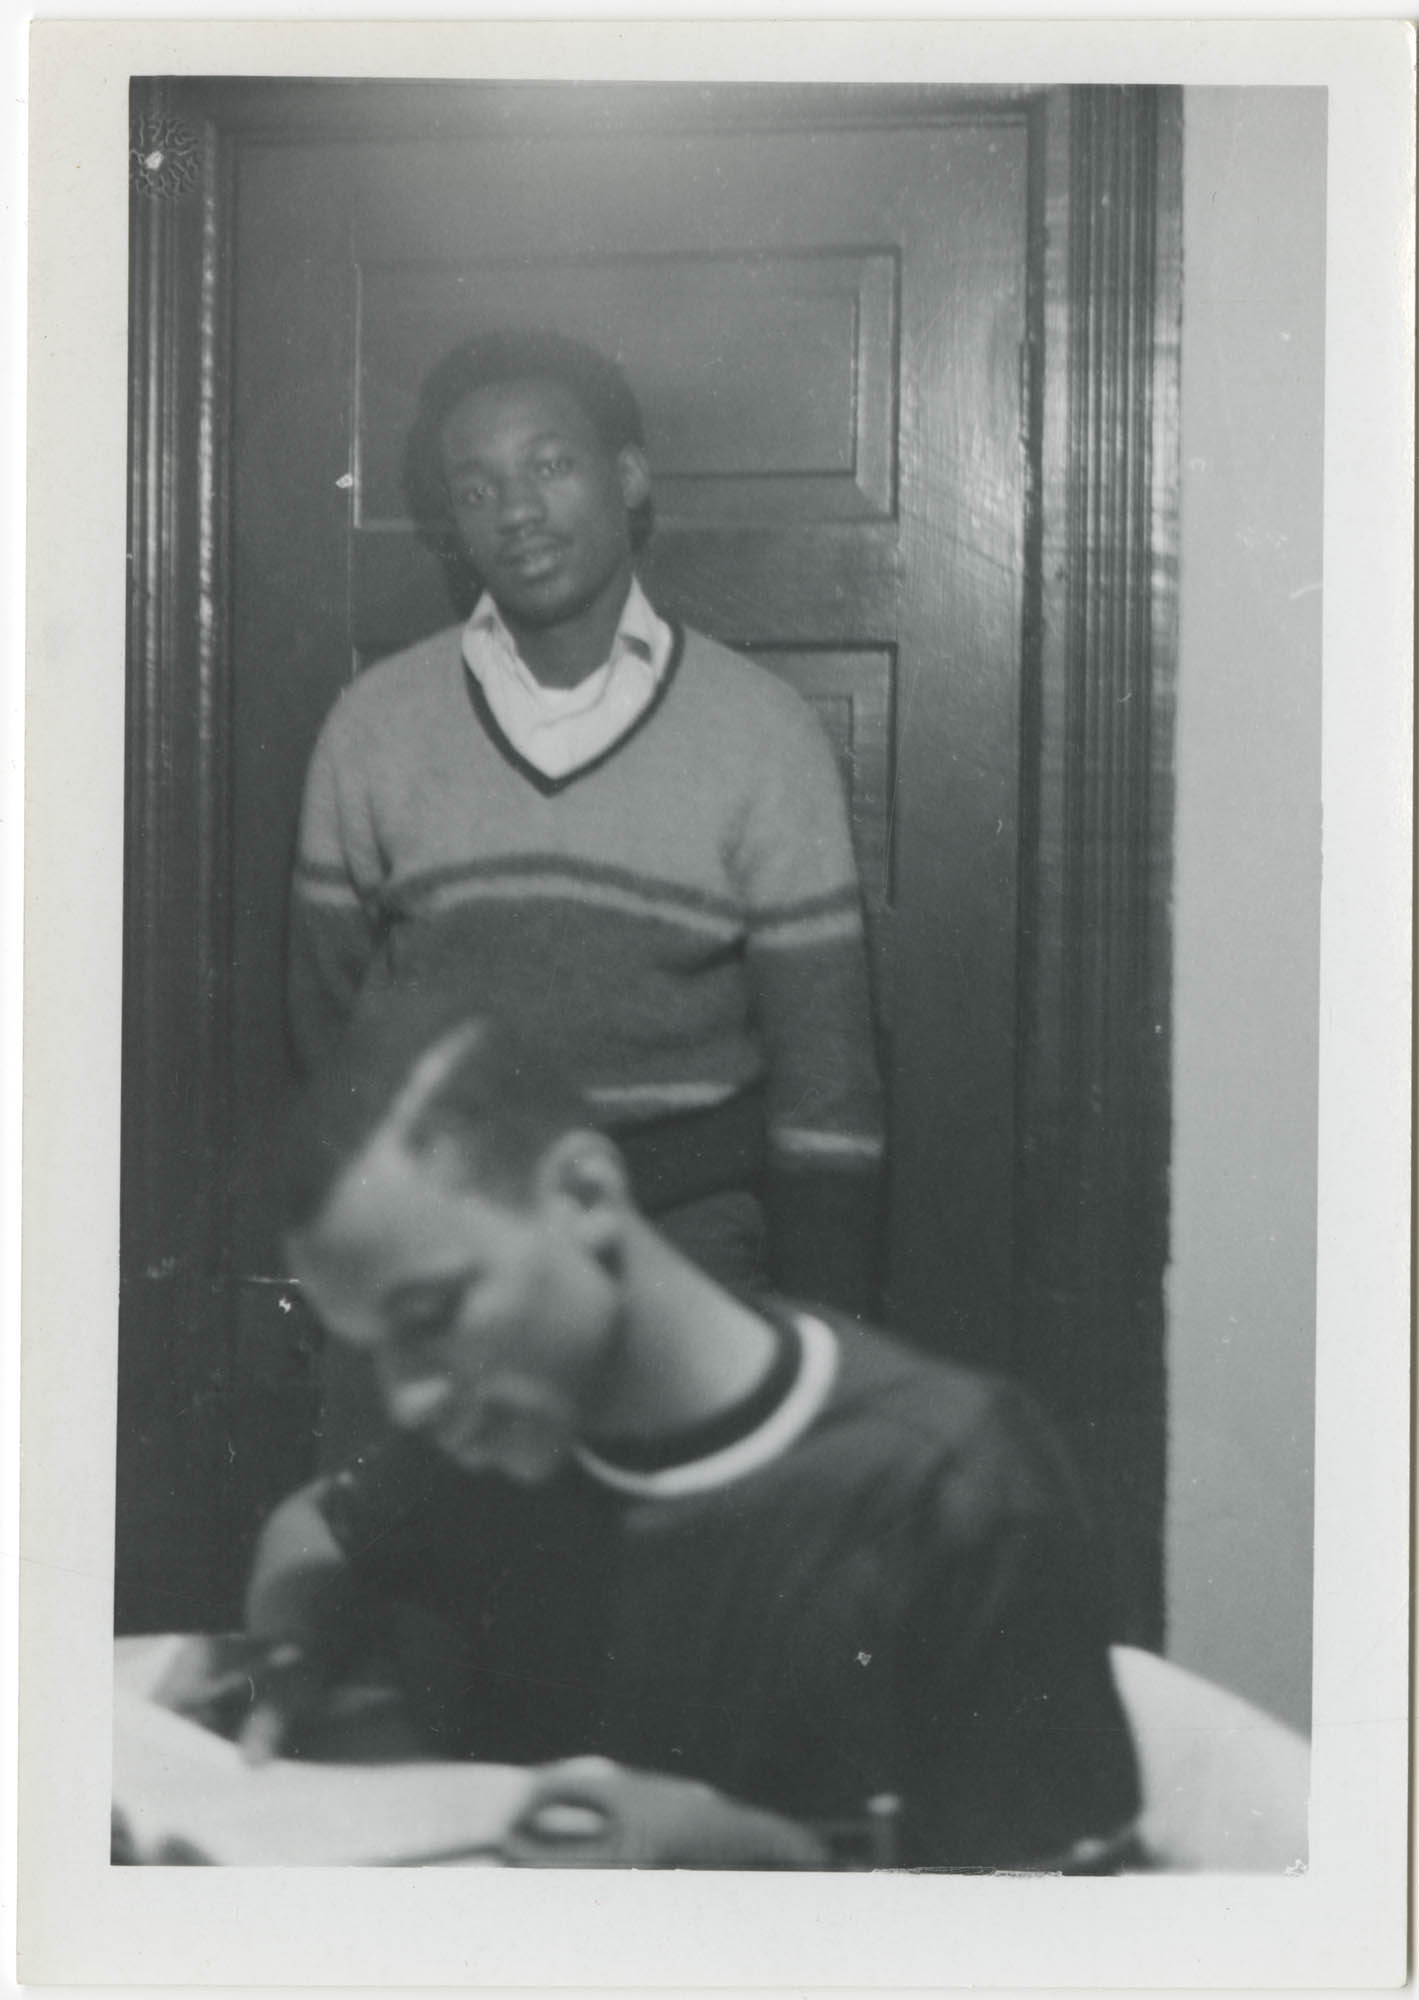 Photograph of Two Young Men Studying